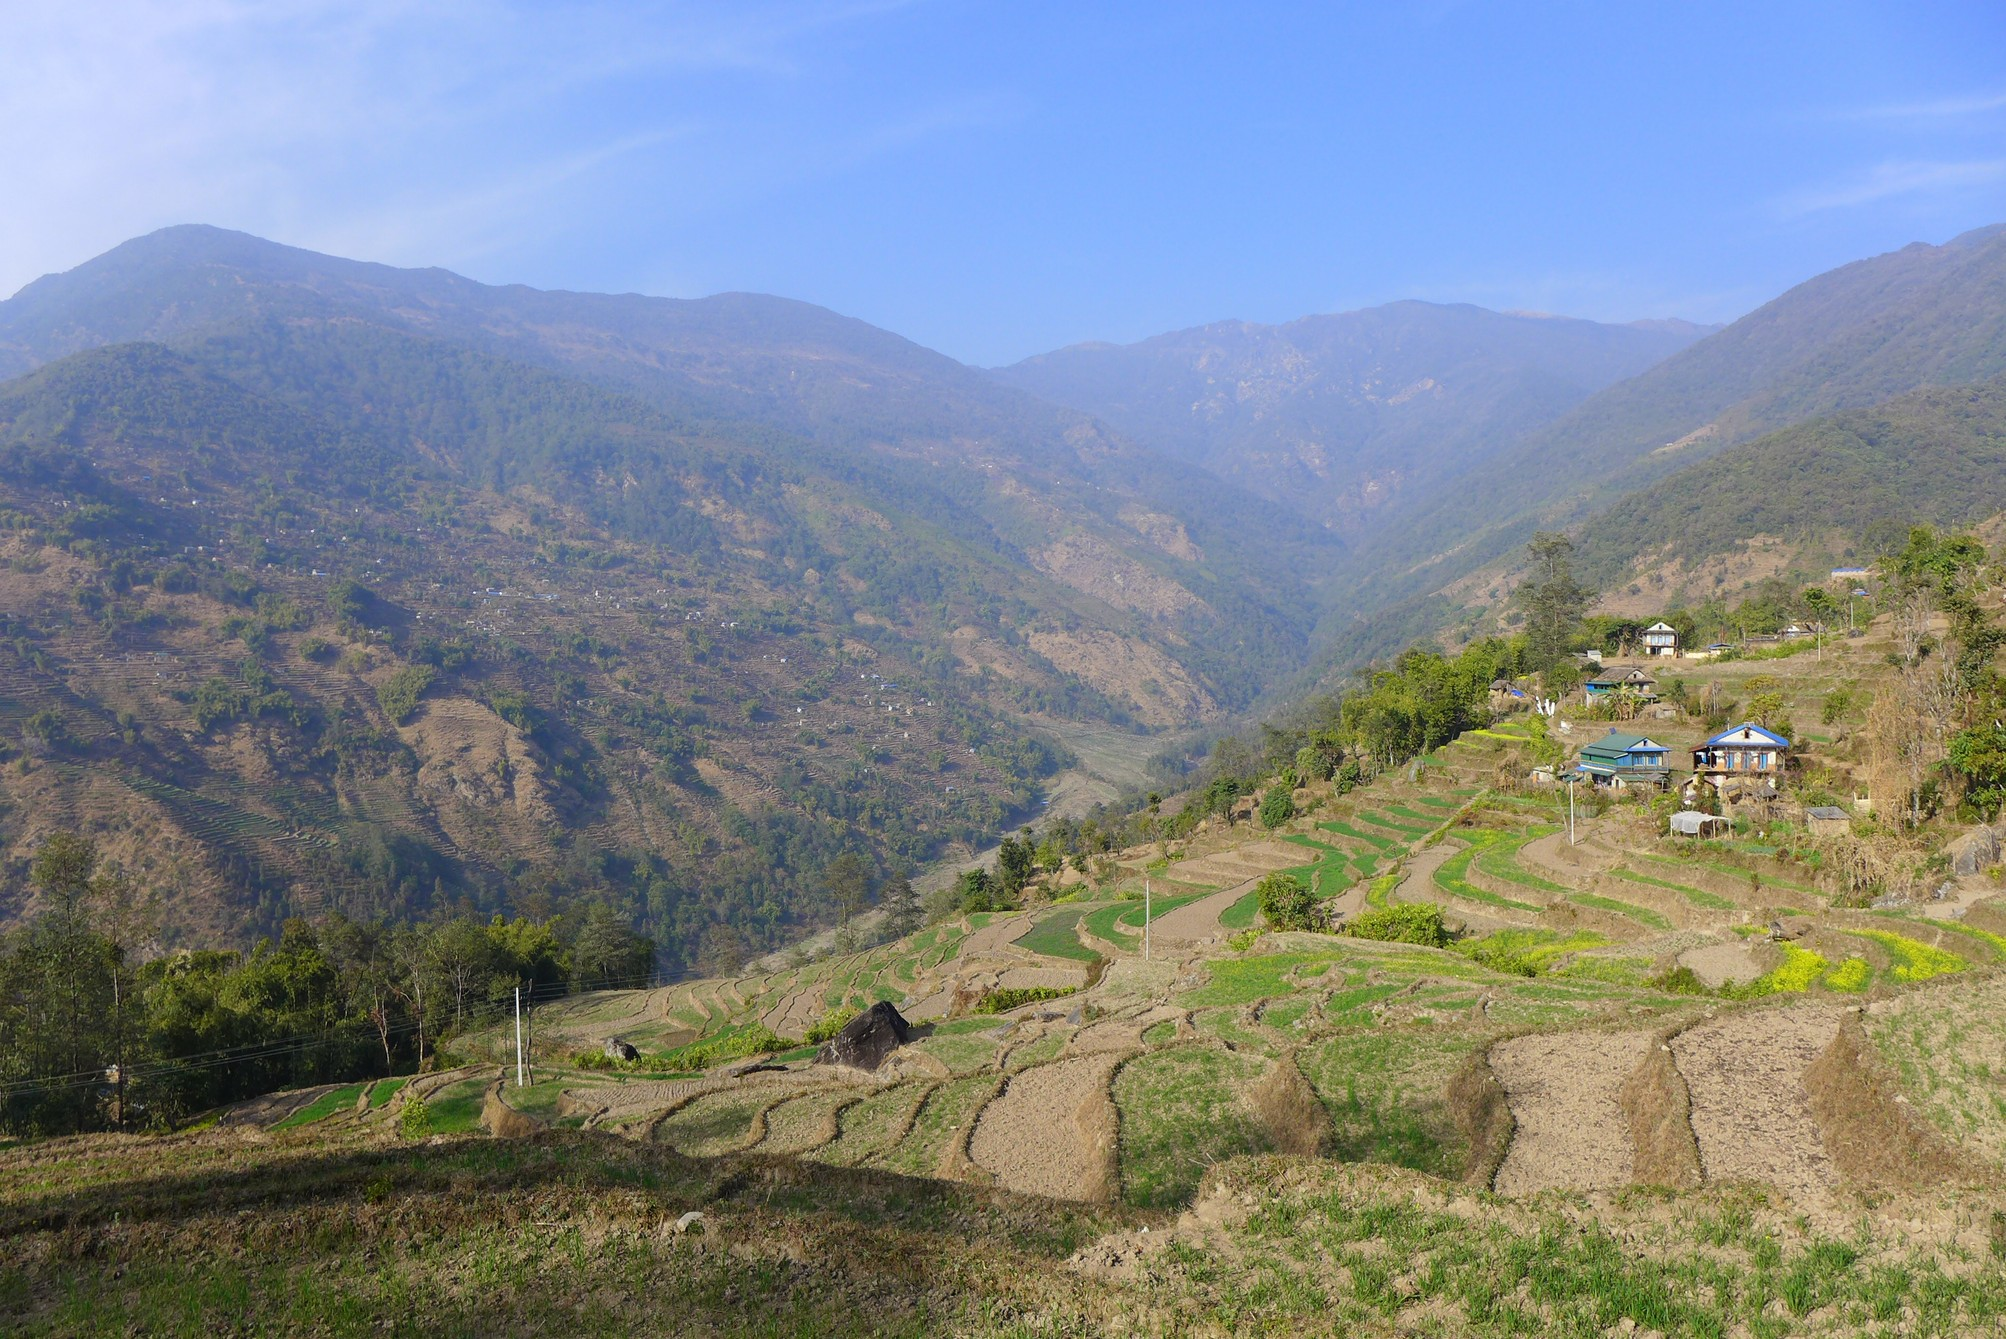 The Lidim river valley forms the center of the Nachiring speaking area